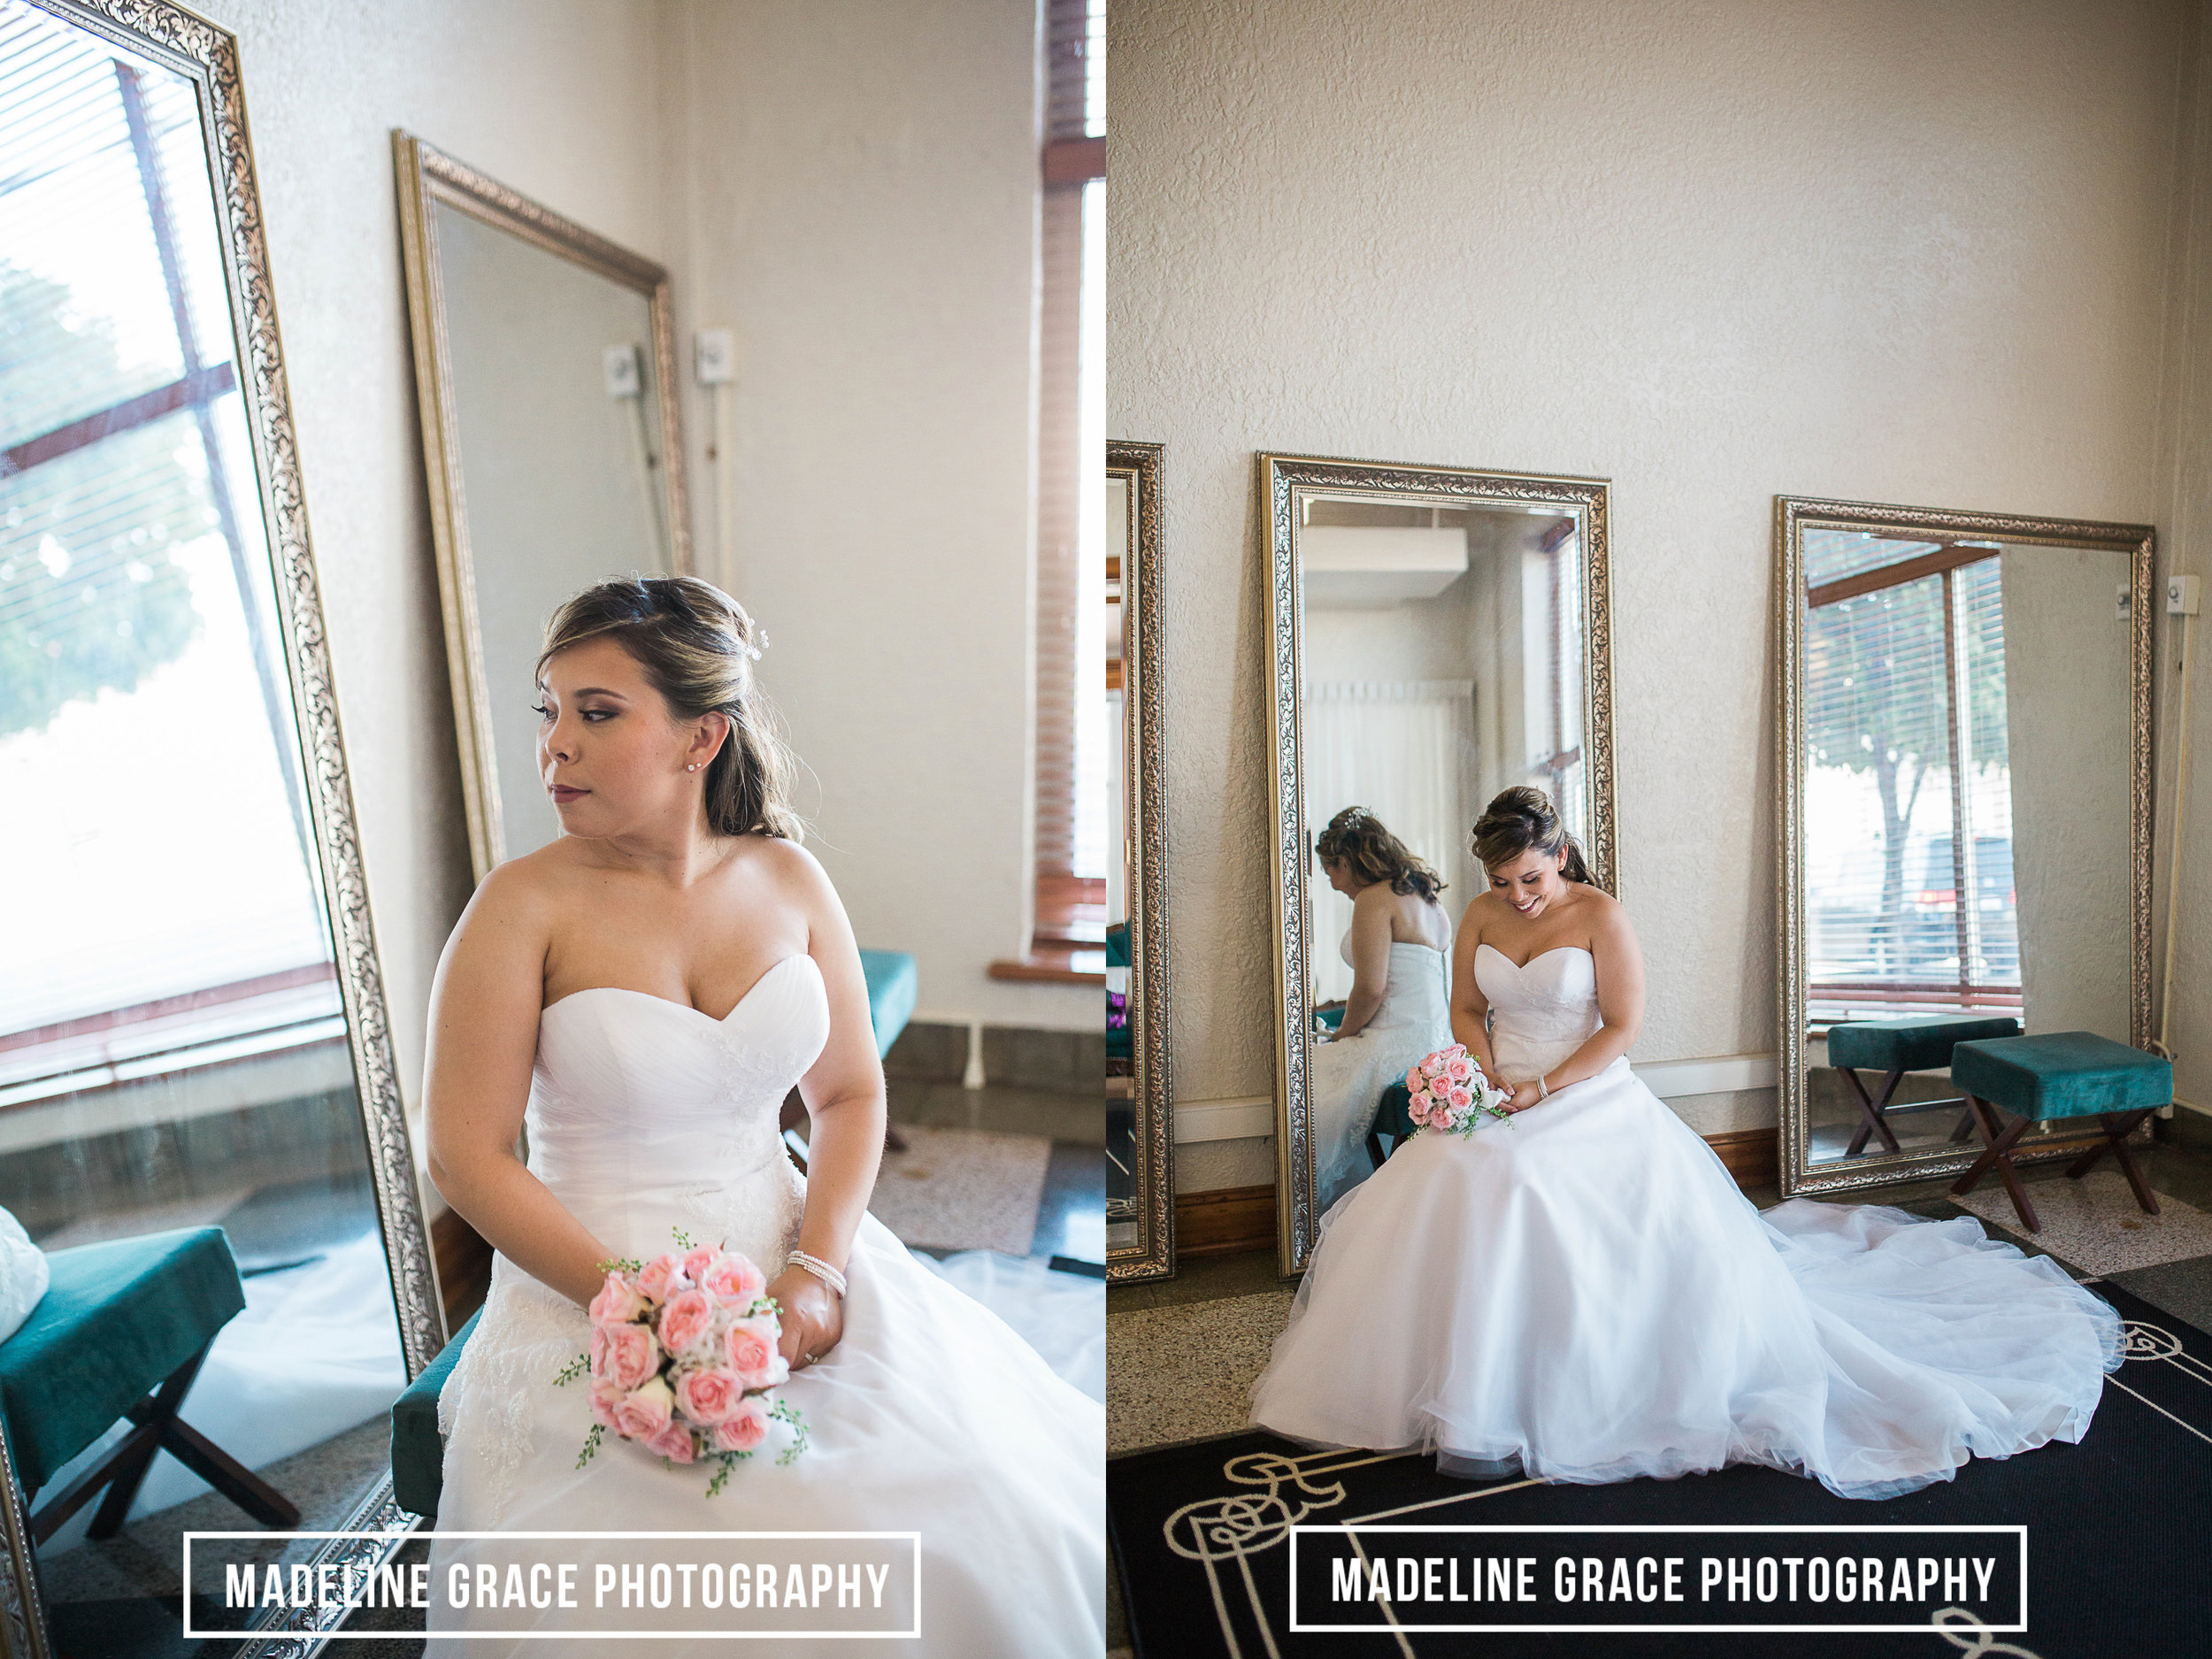 MGP-Sarah-Bridals-Blog-11 copy.jpg